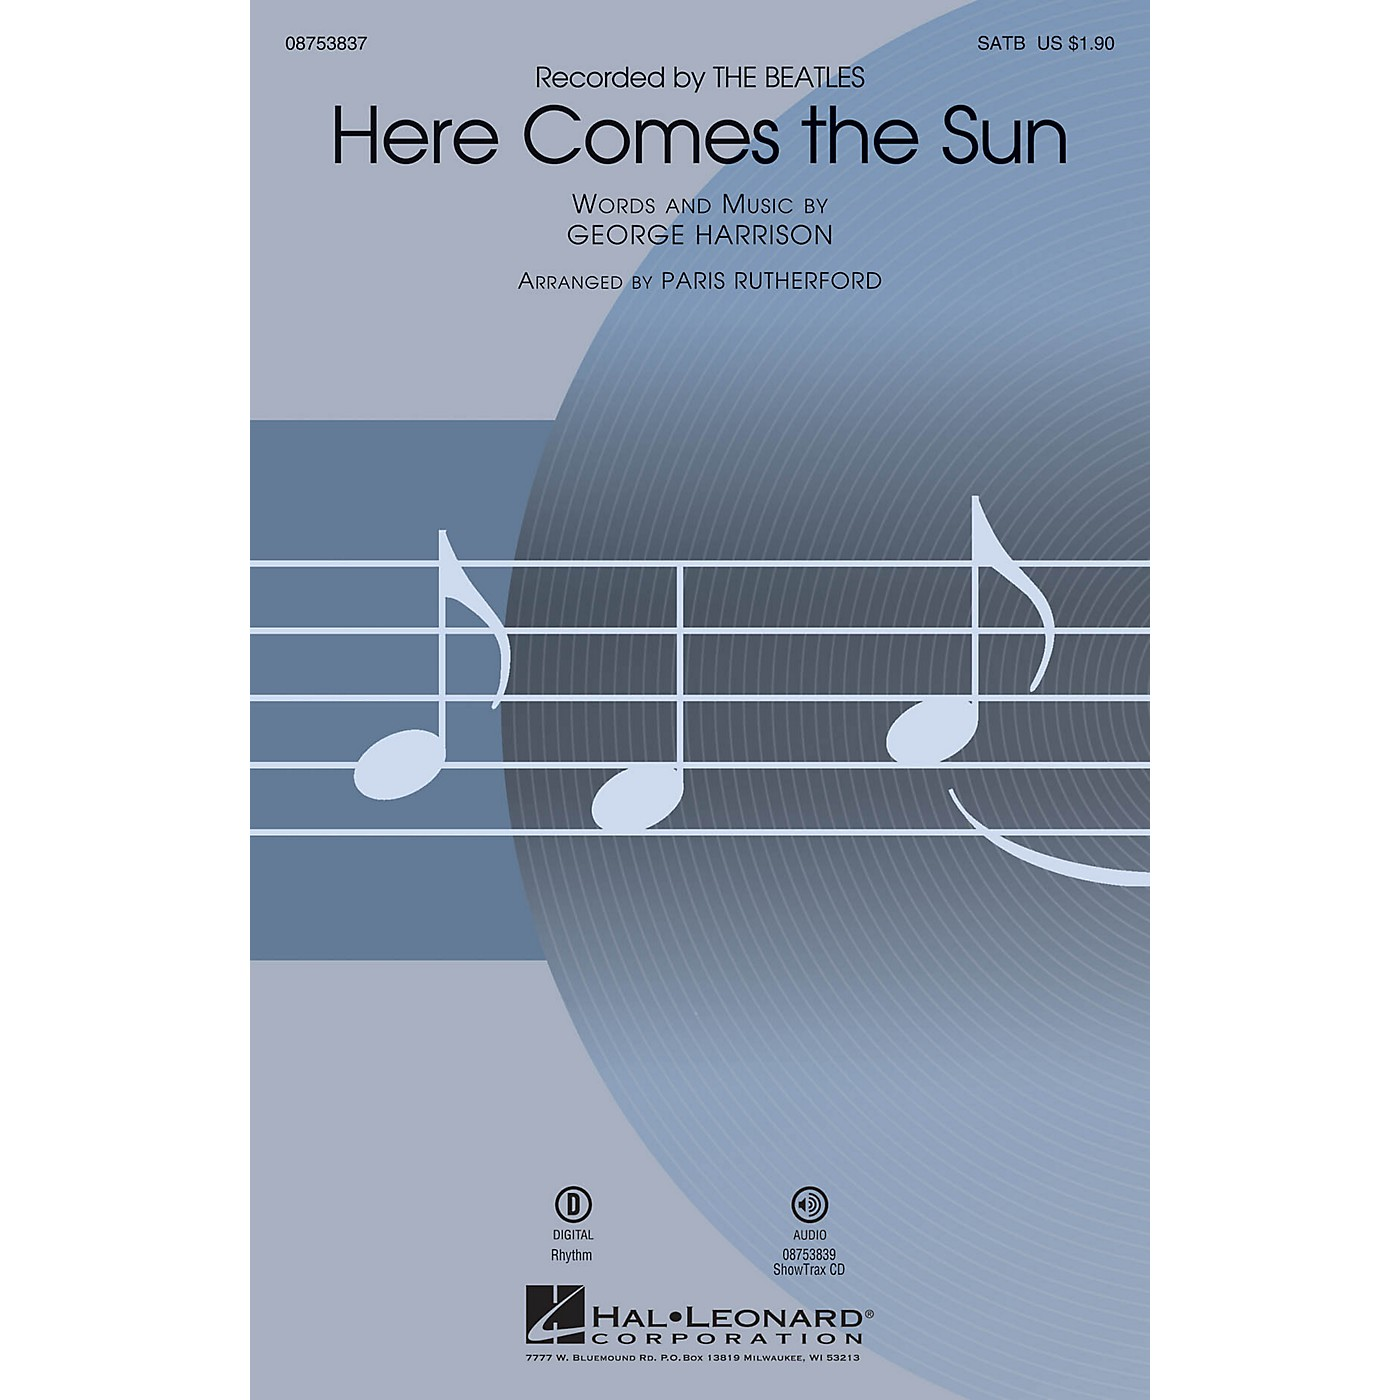 Hal Leonard Here Comes the Sun SATB by The Beatles arranged by Paris Rutherford thumbnail